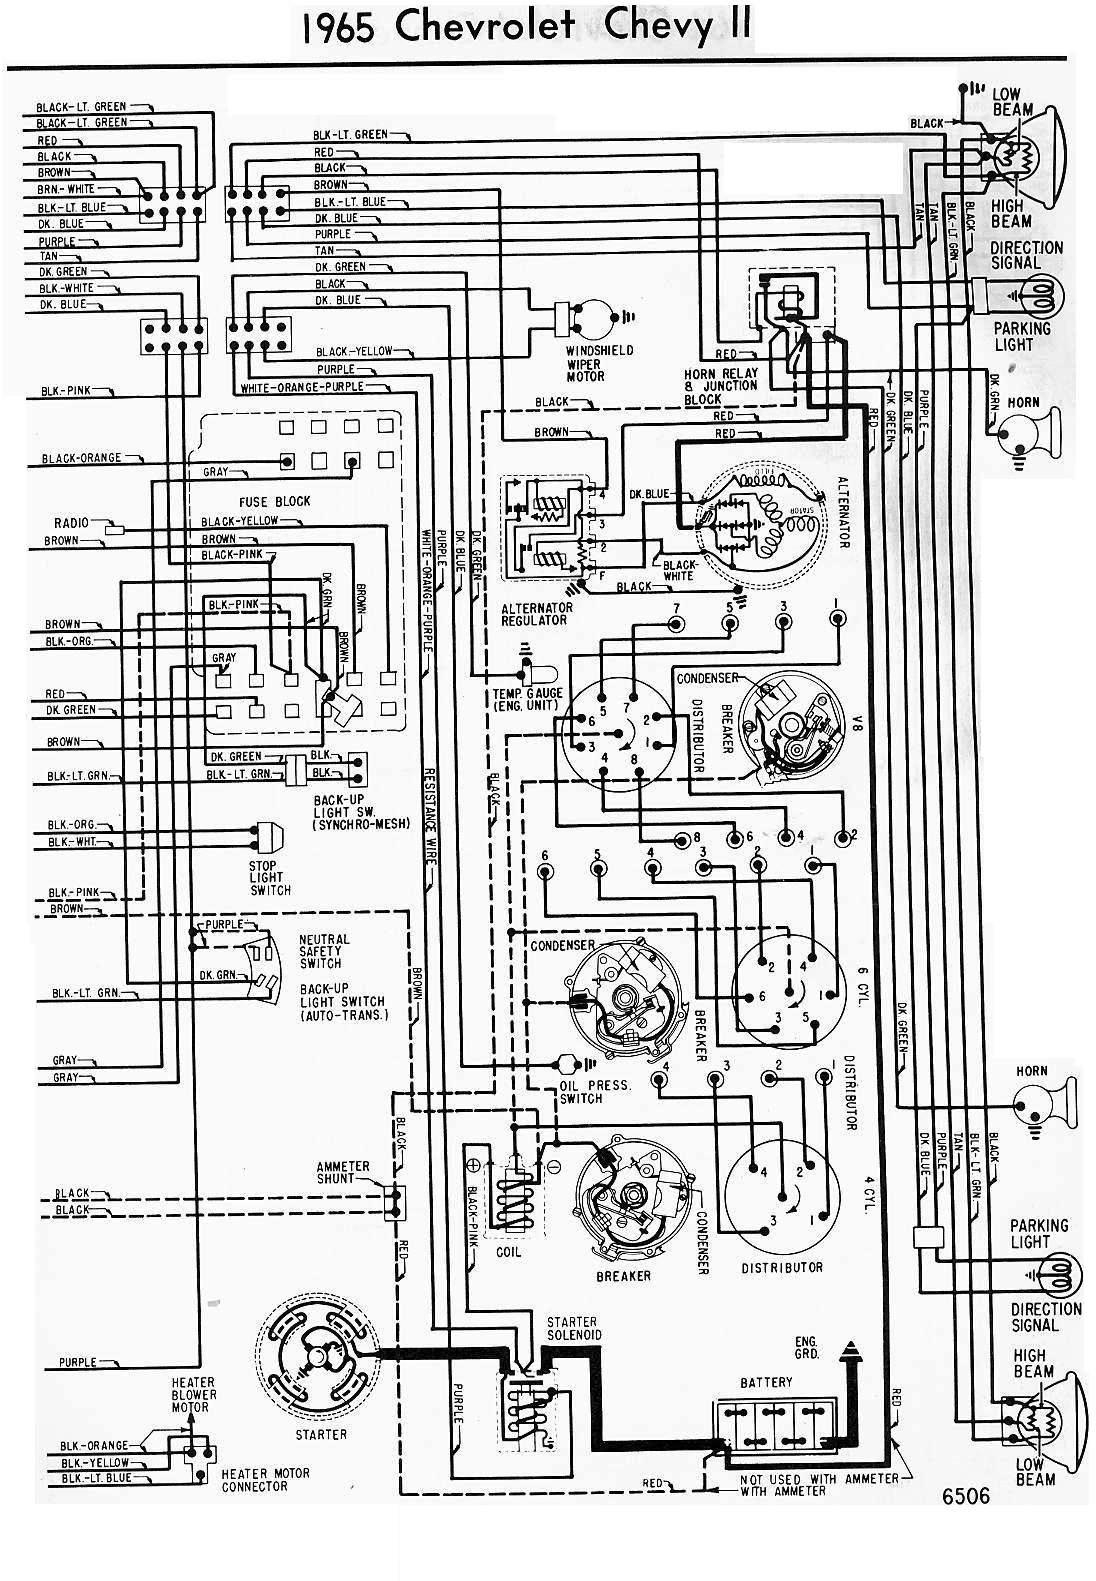 hight resolution of 1964 chevy ii wiring diagram 1964 chevy impala ignition wiring diagramrh svlc us